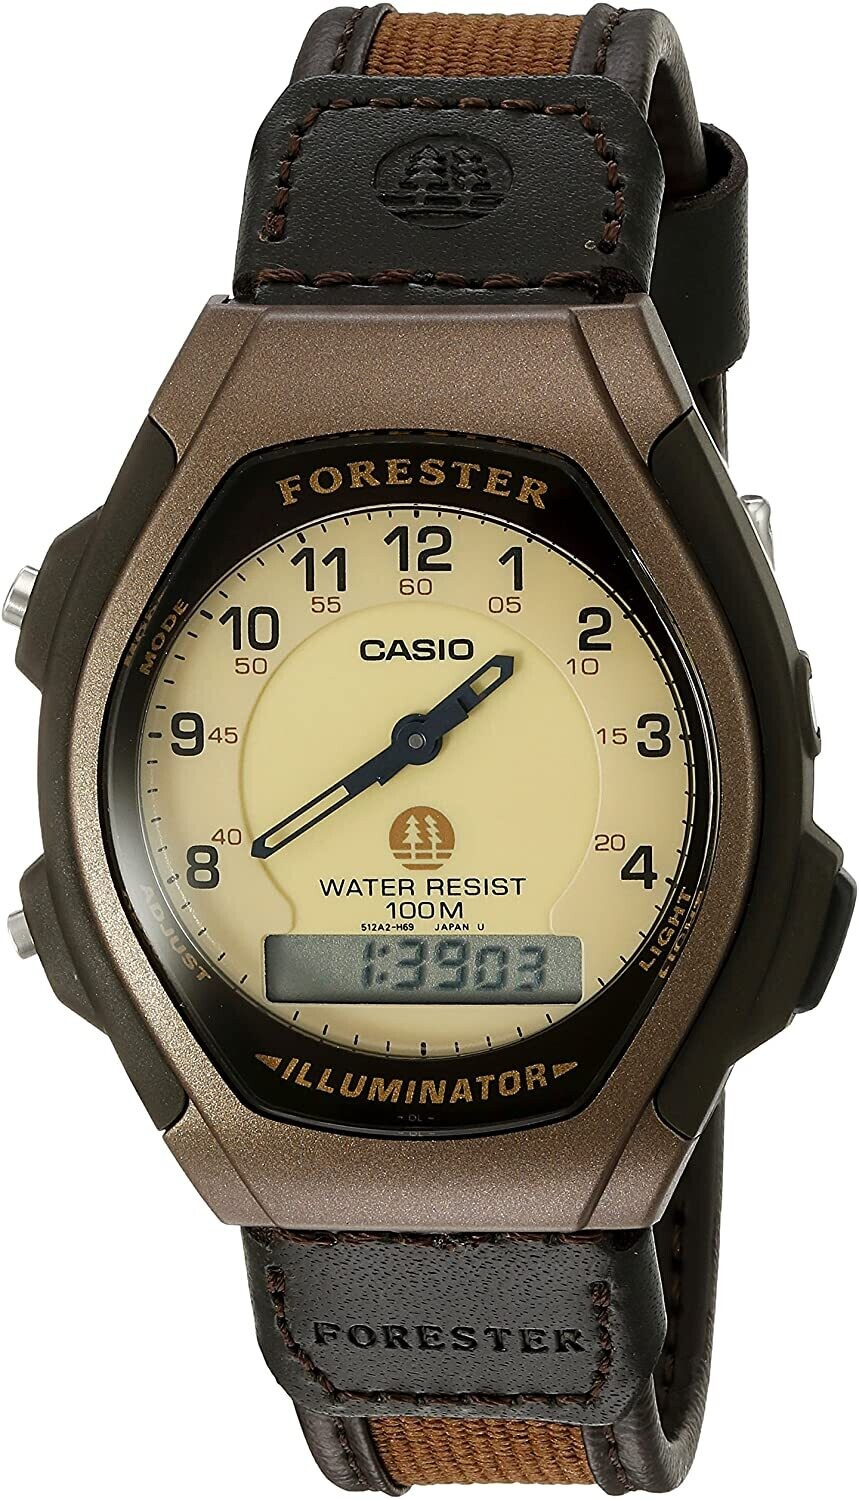 reloj hombre Casio Forester FT-600WB-5B hora dual luz led 100m water resist